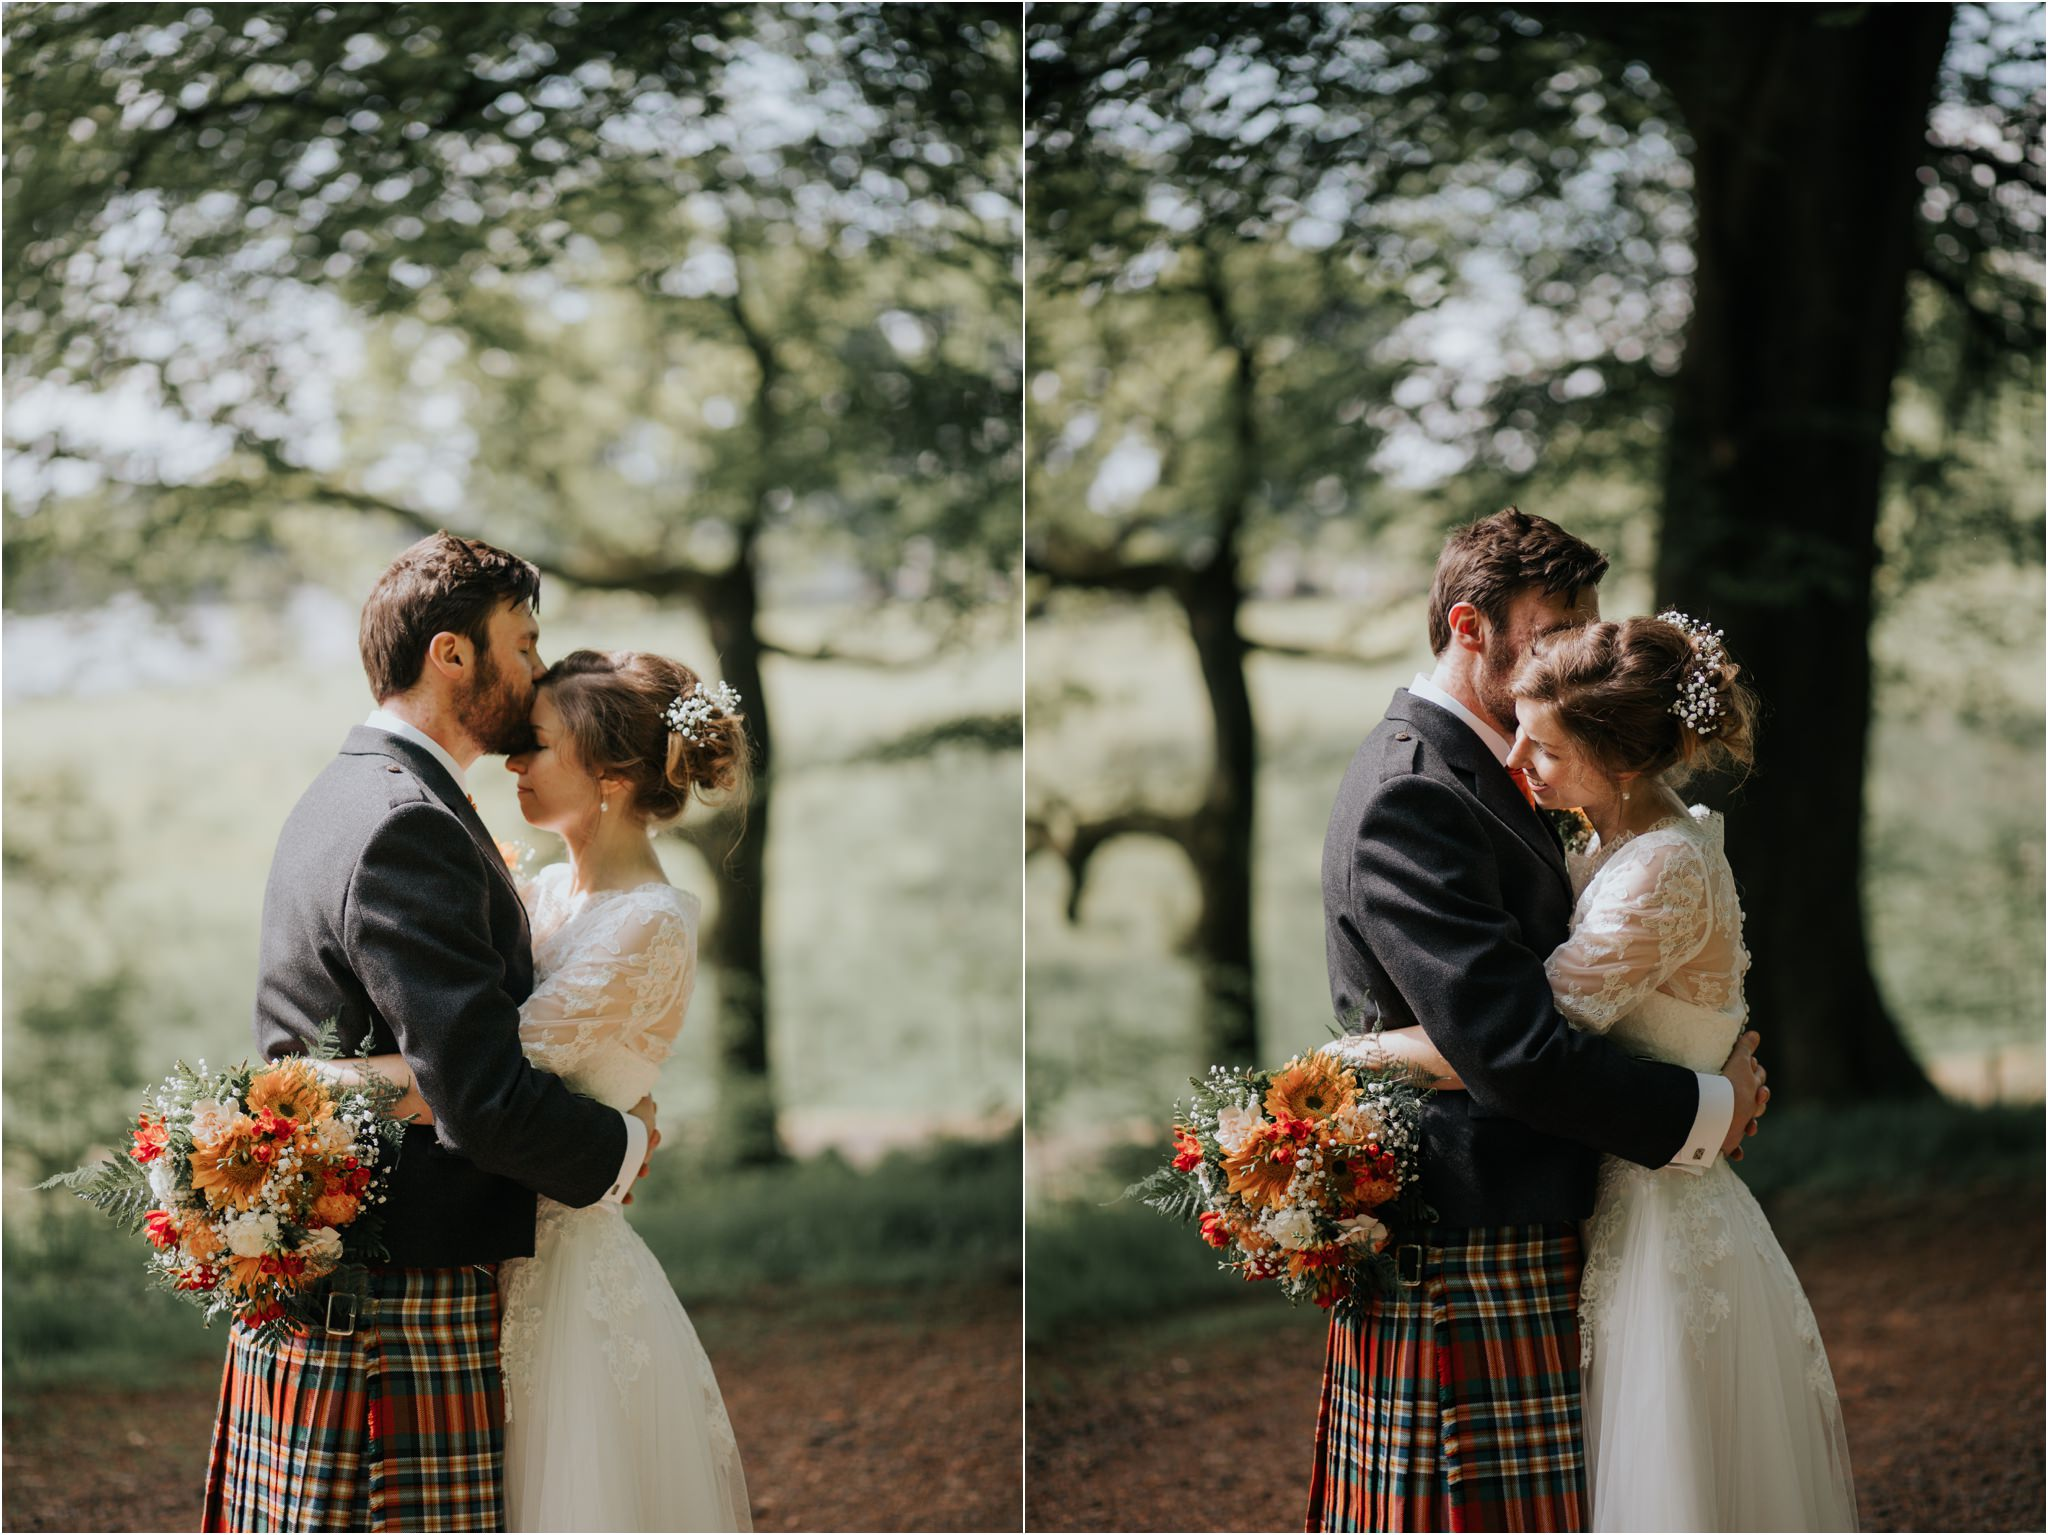 Photography 78 - Glasgow Wedding Photographer - Fraser Thirza - Killearn Village Hall - Three Sisters Bake Wedding_0106.jpg